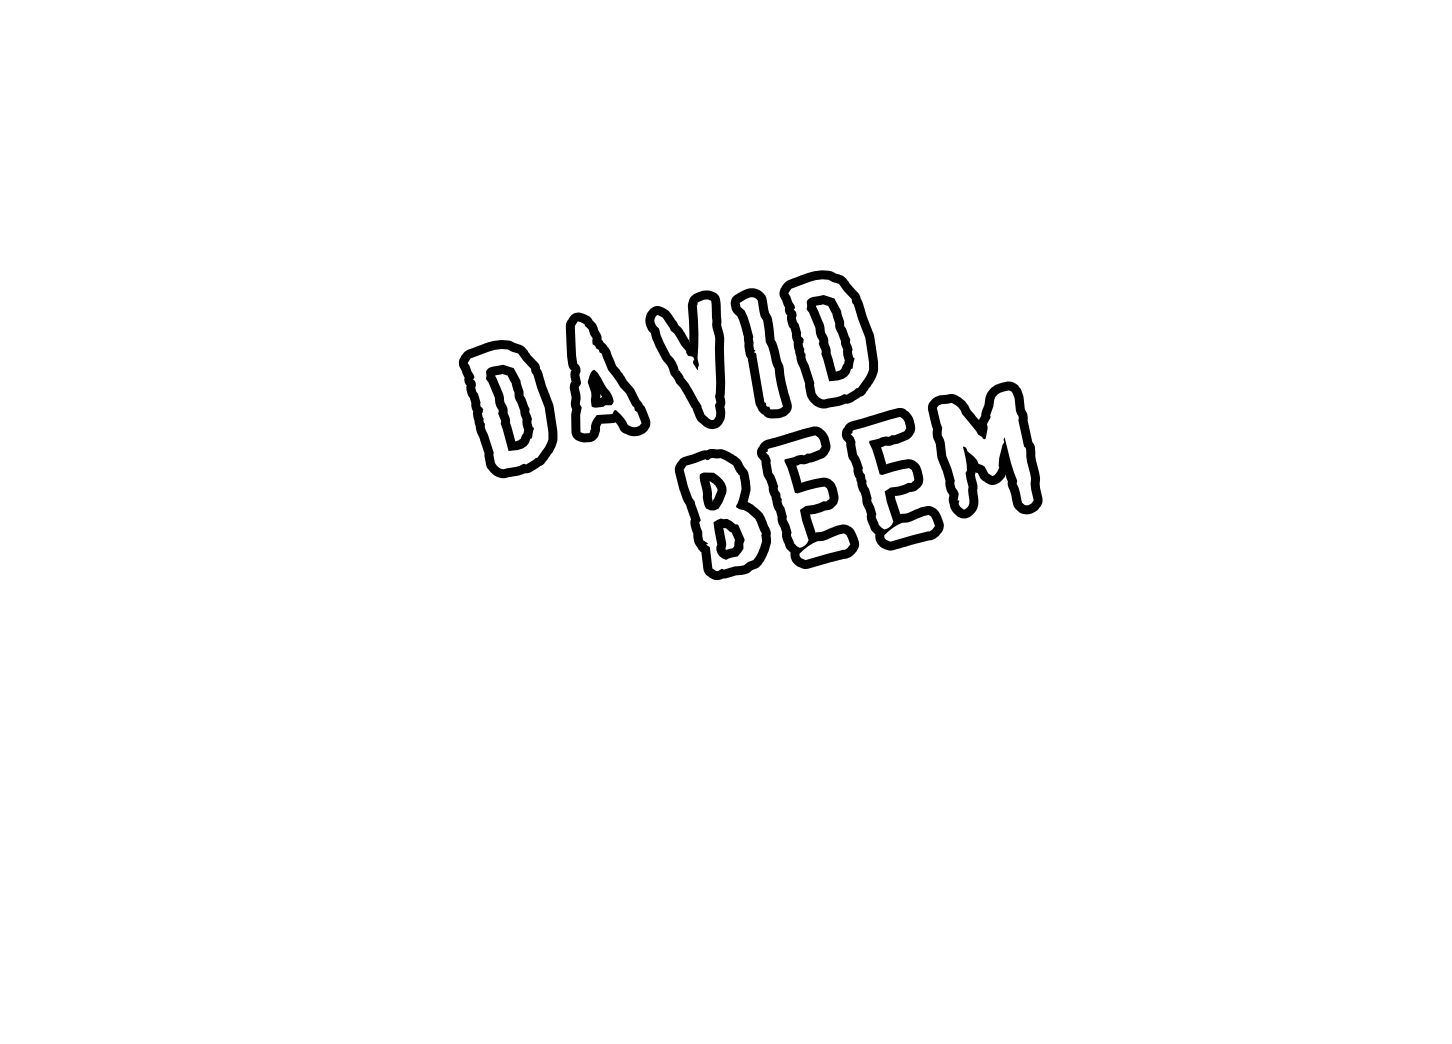 David Beem, Author